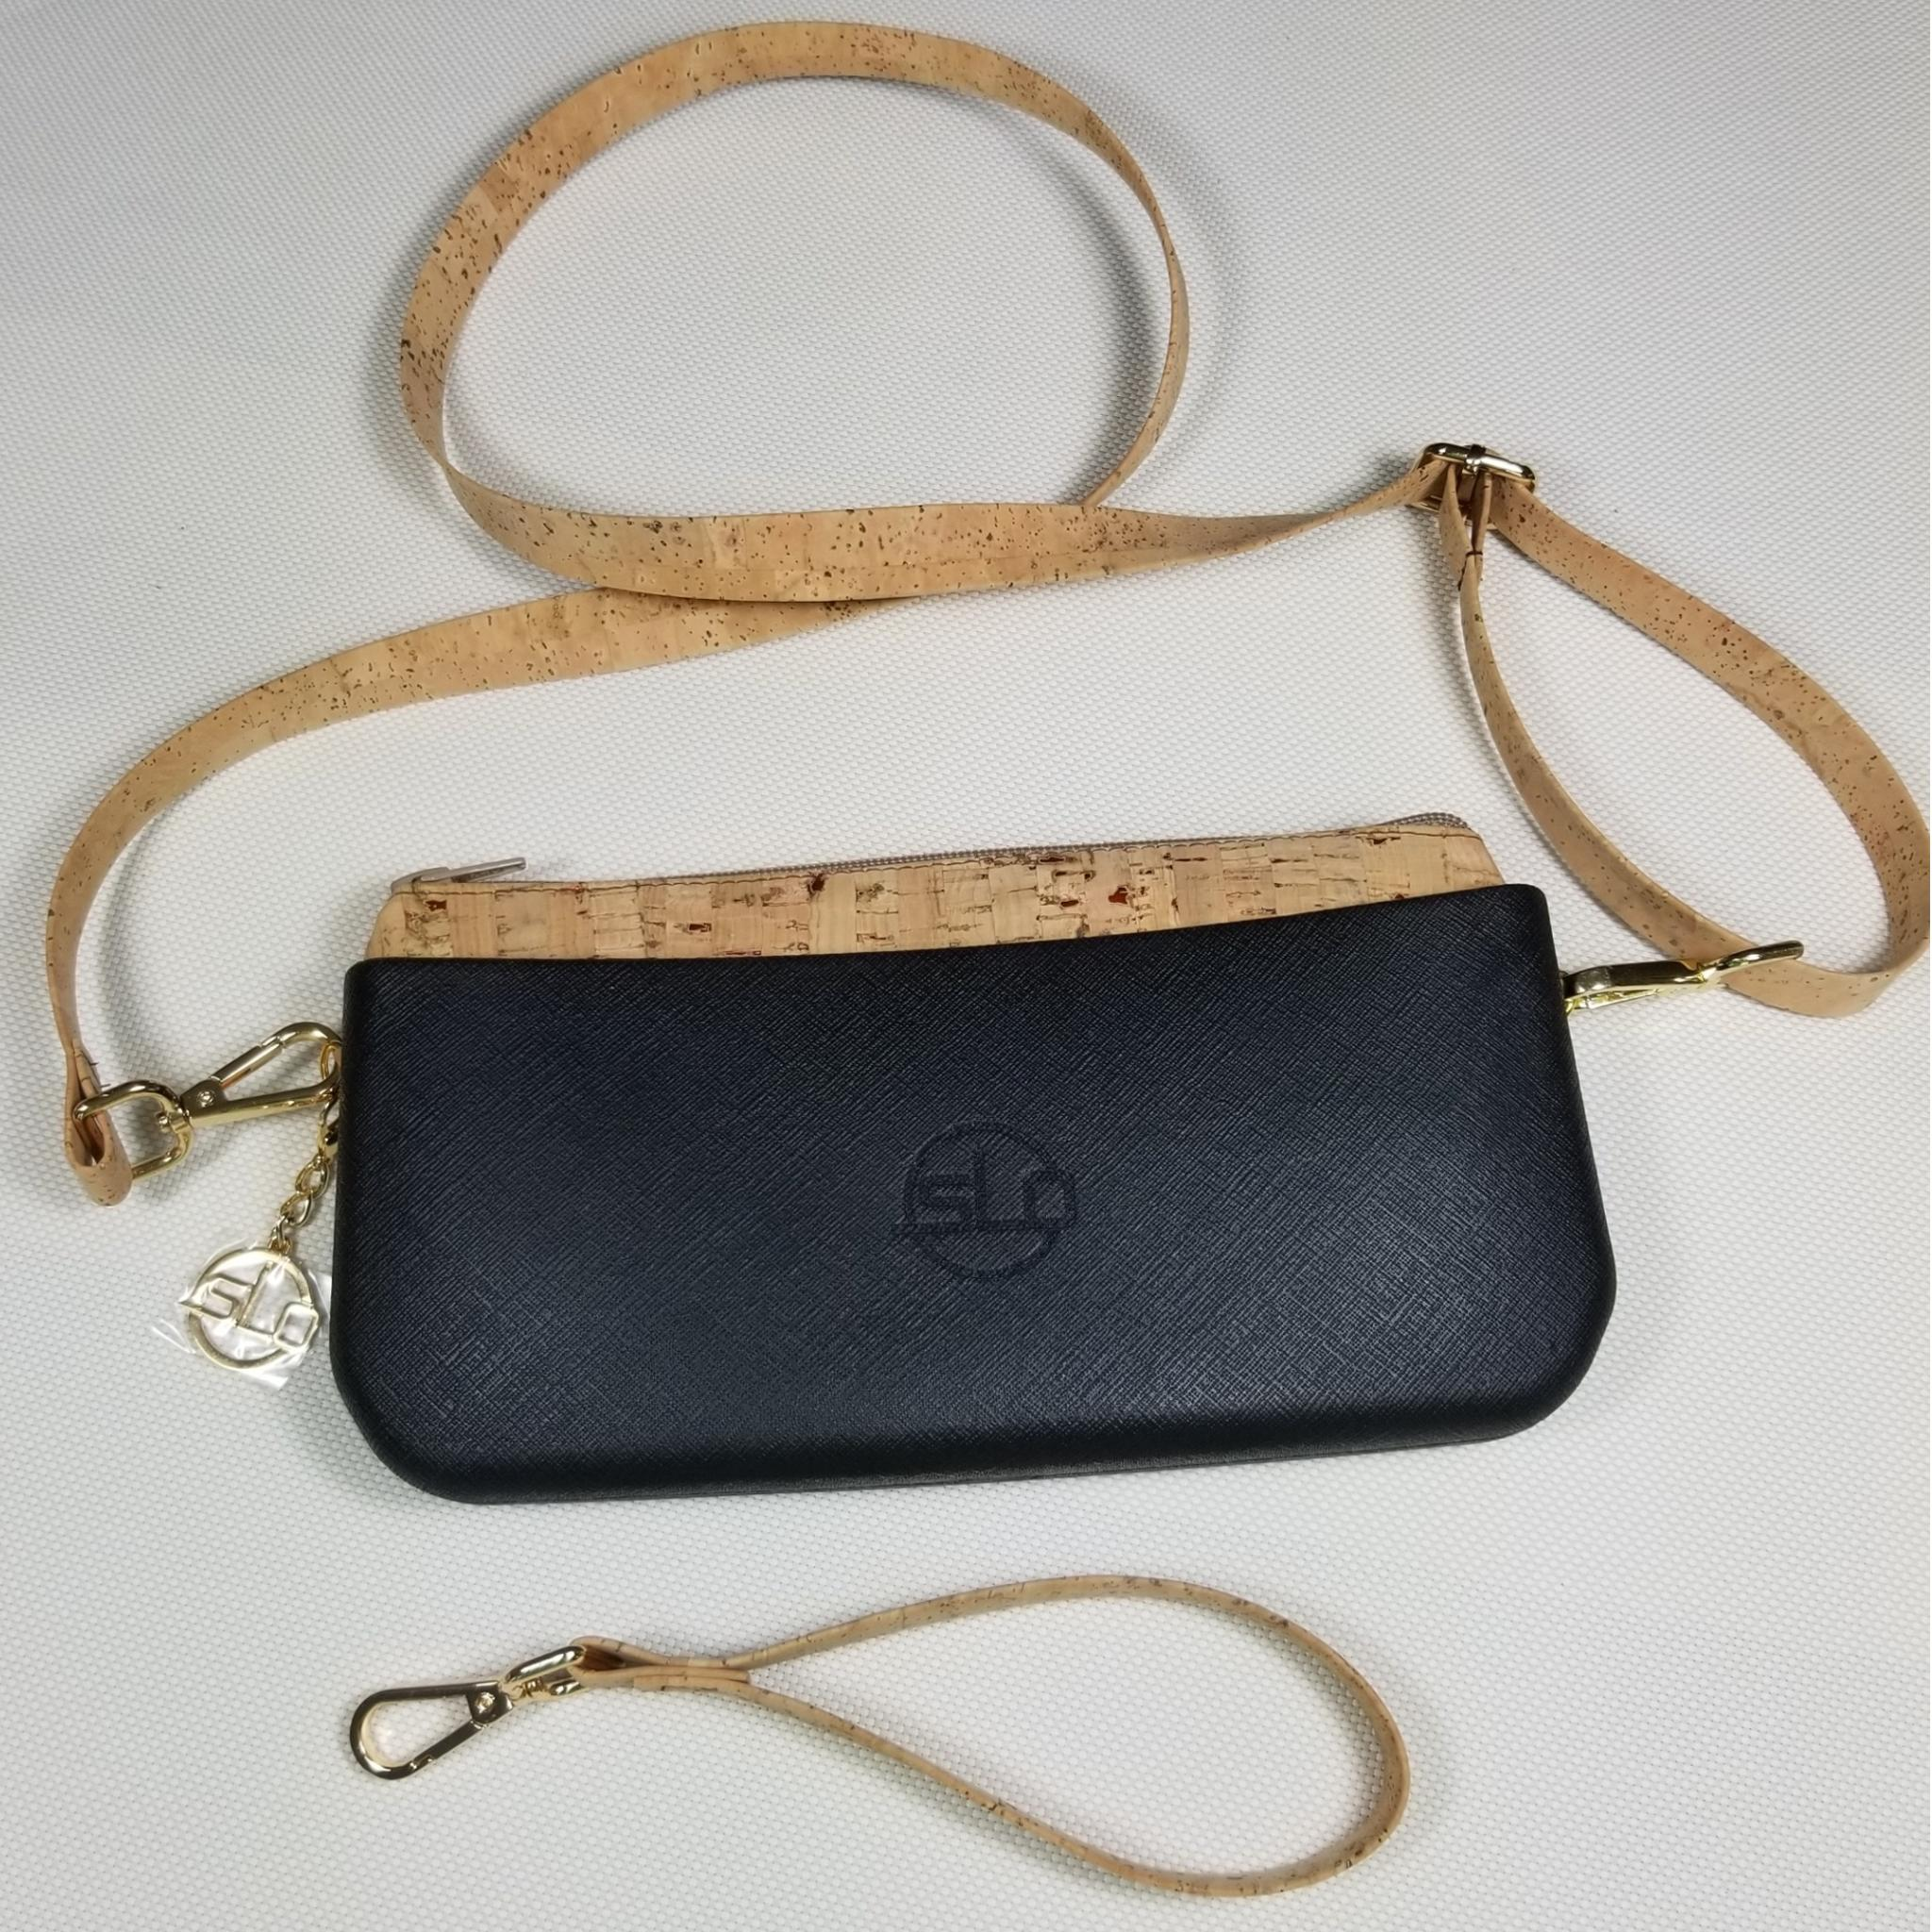 SLO Fashion Clutch - Black Body - Natural Cork